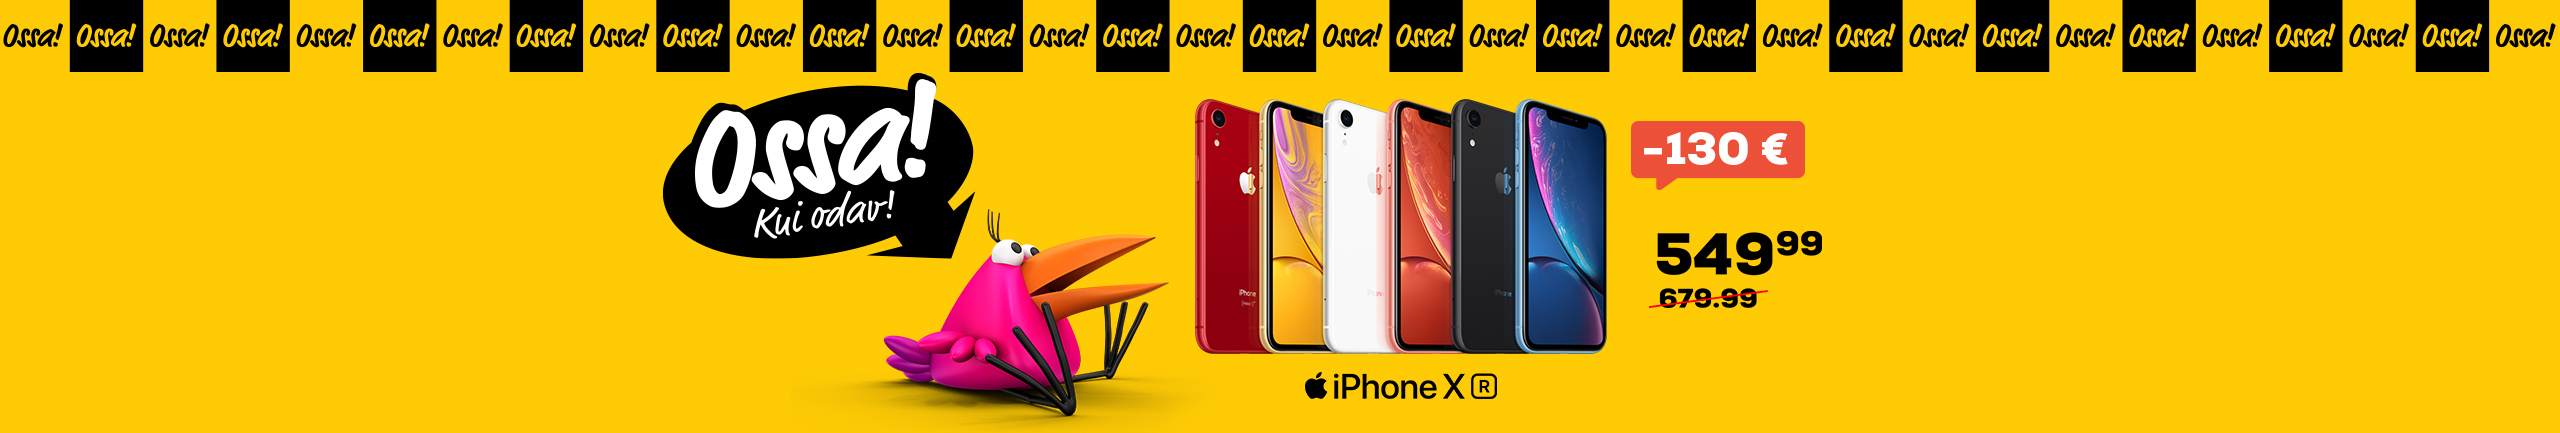 New Front Page Slider Ossa iPhone XR